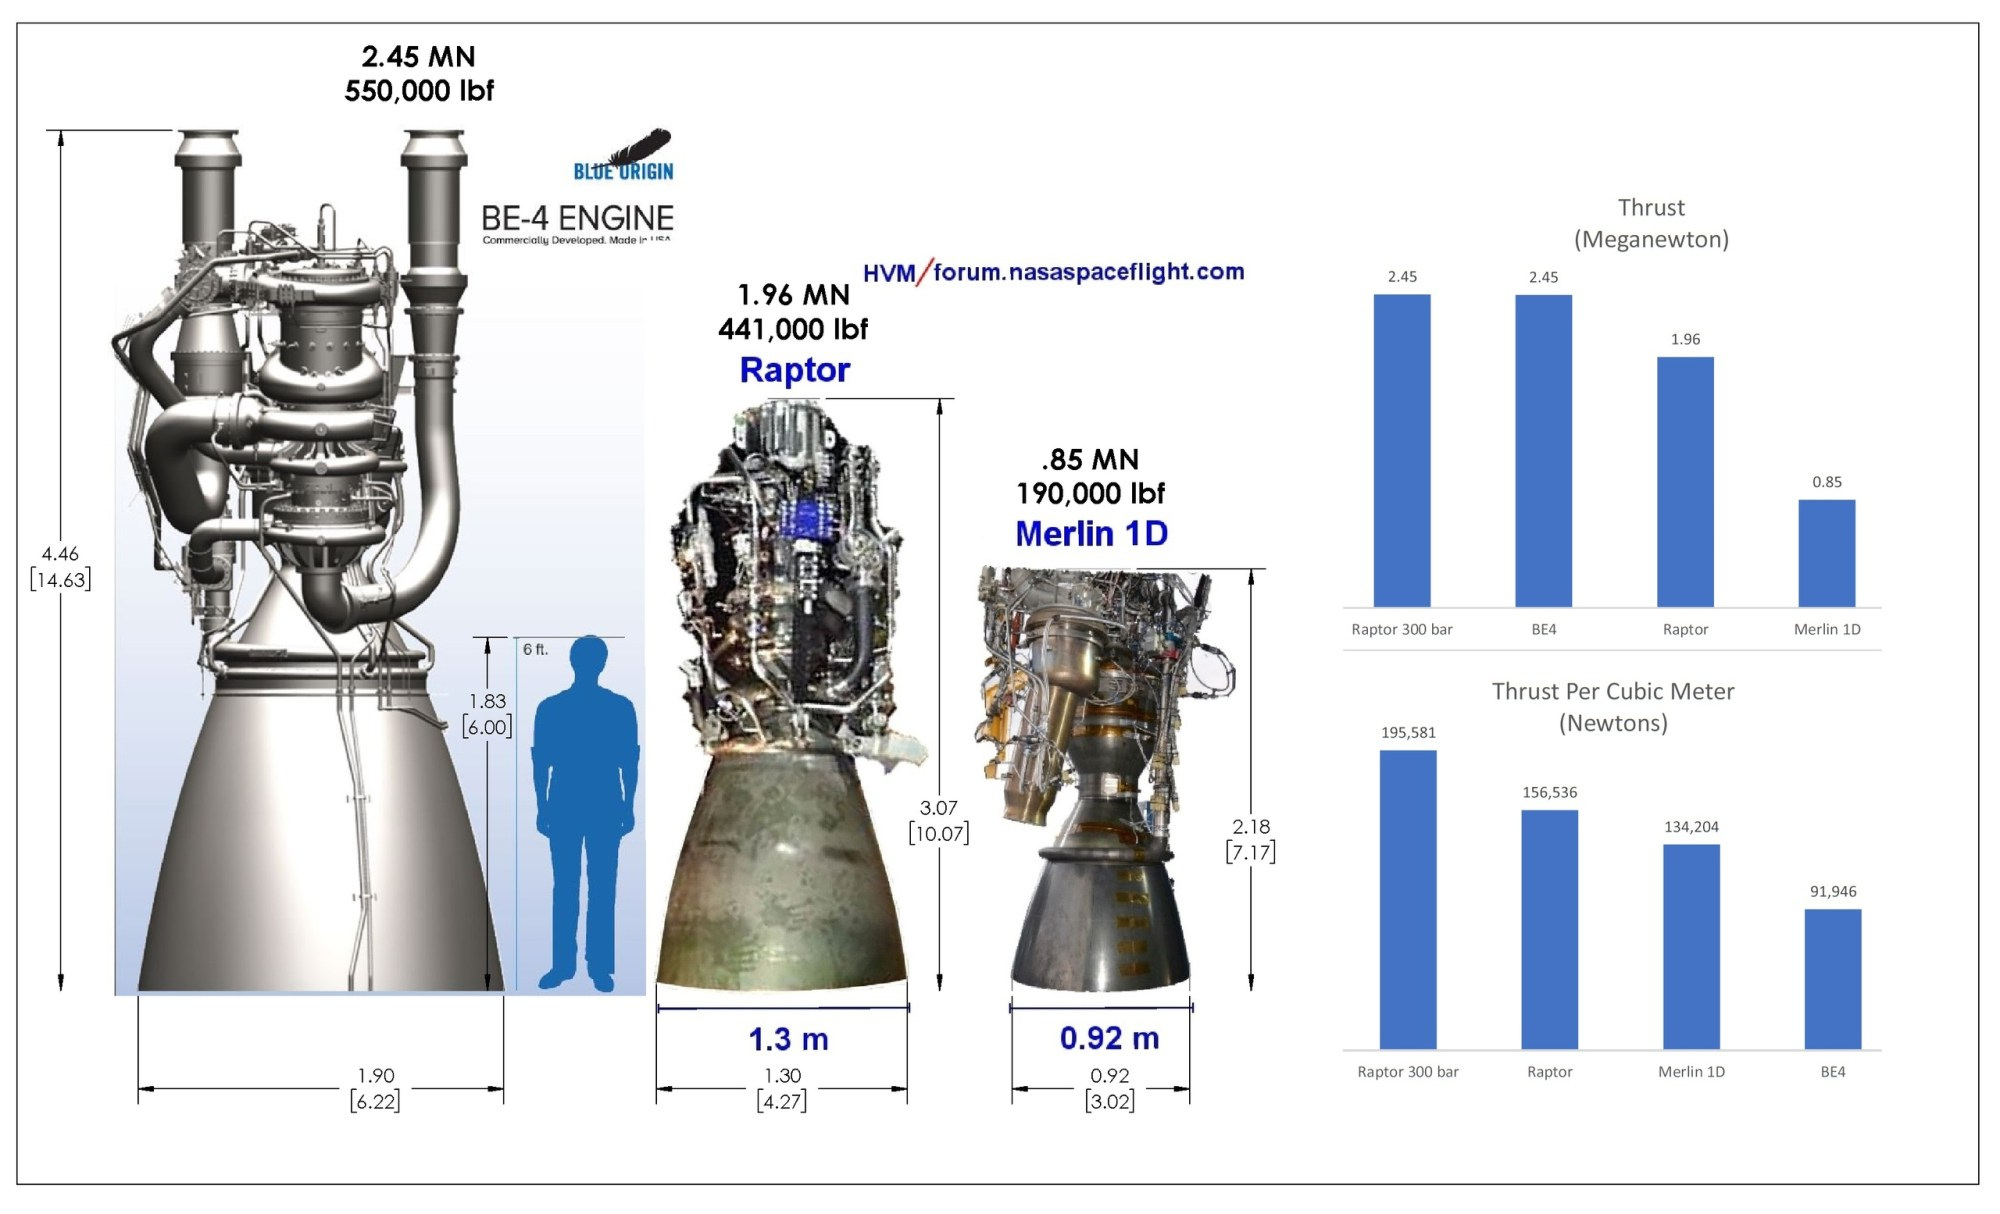 hight resolution of raptor engine size comparison 1 3m nozzle scaled